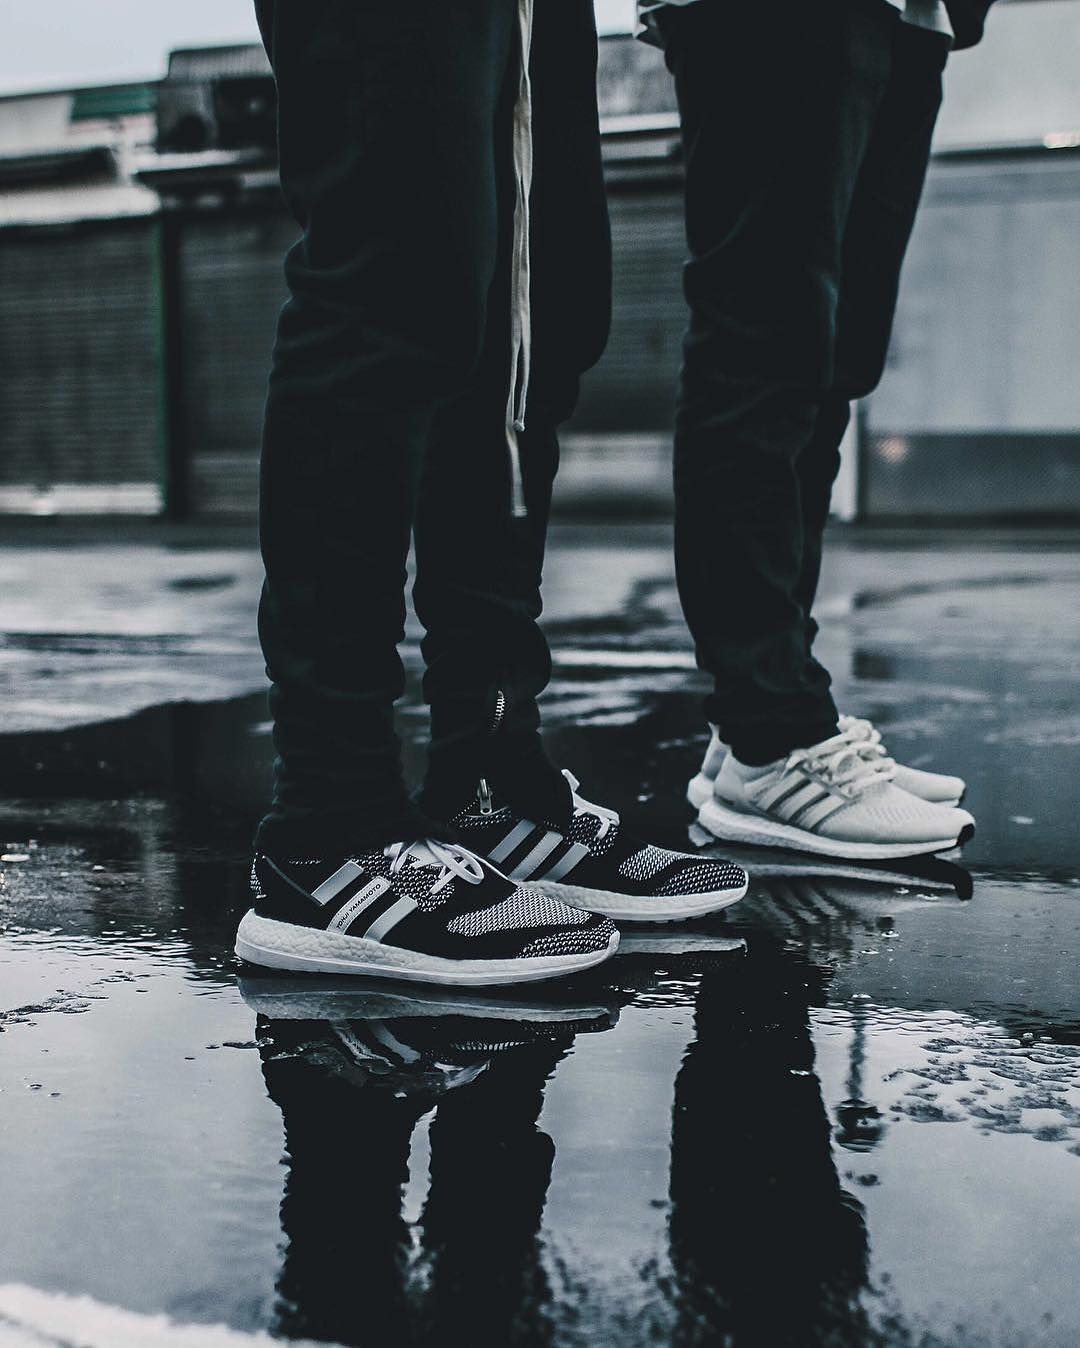 f98b18f08  hypefeet   adidasy3 Pure Boost ZG Knit or adidas Ultra Boost  Photo    metinswerve by hypebeast